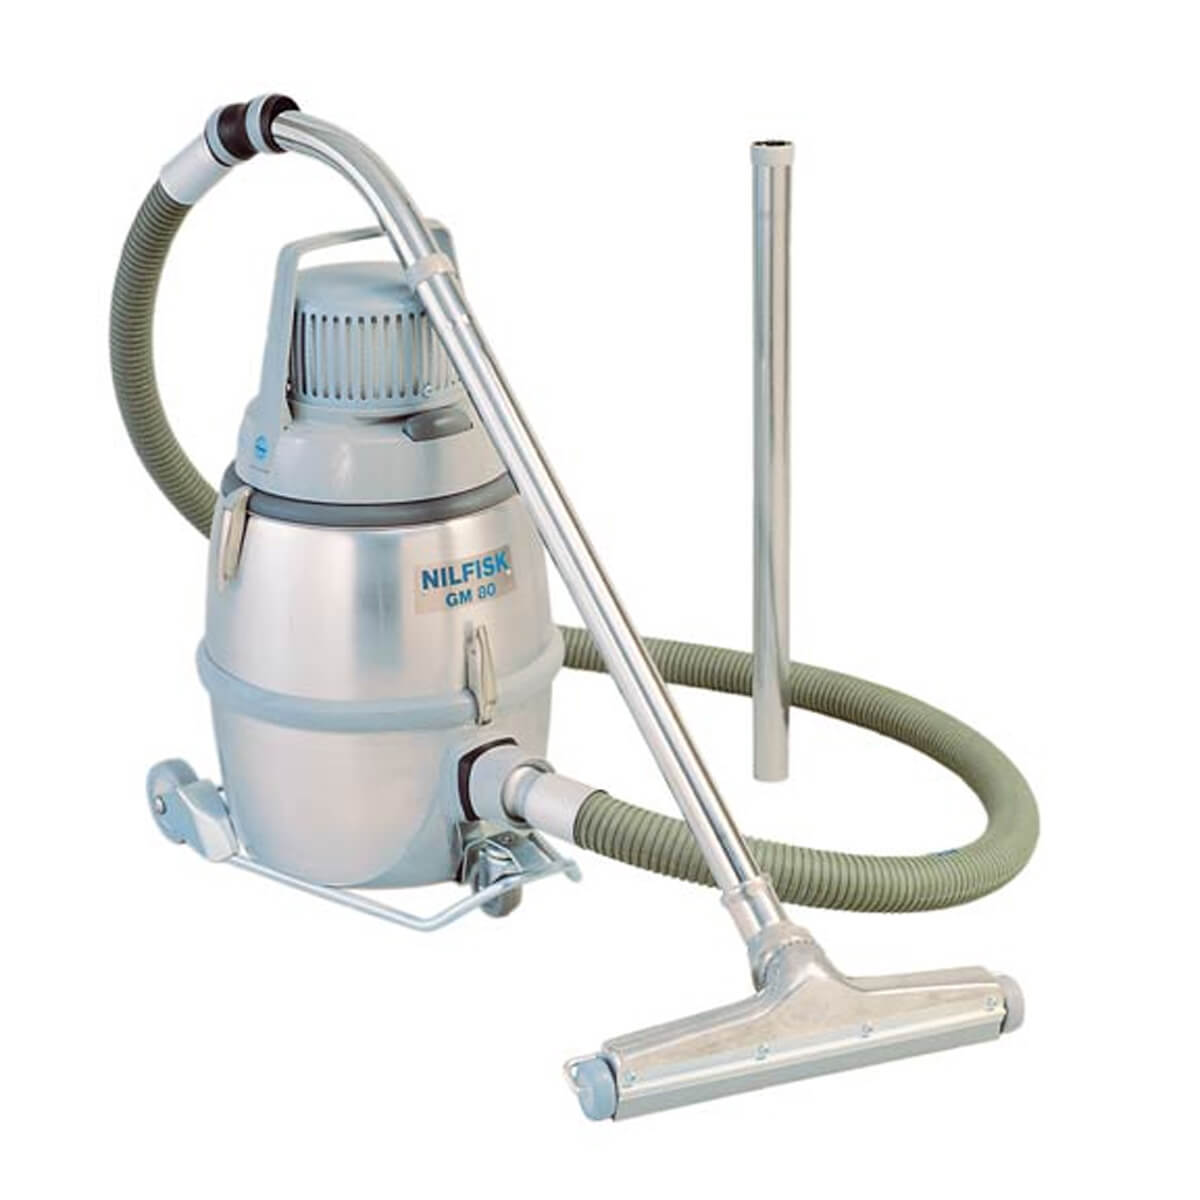 Nilfisk GM-80 Vacuum & Accessories